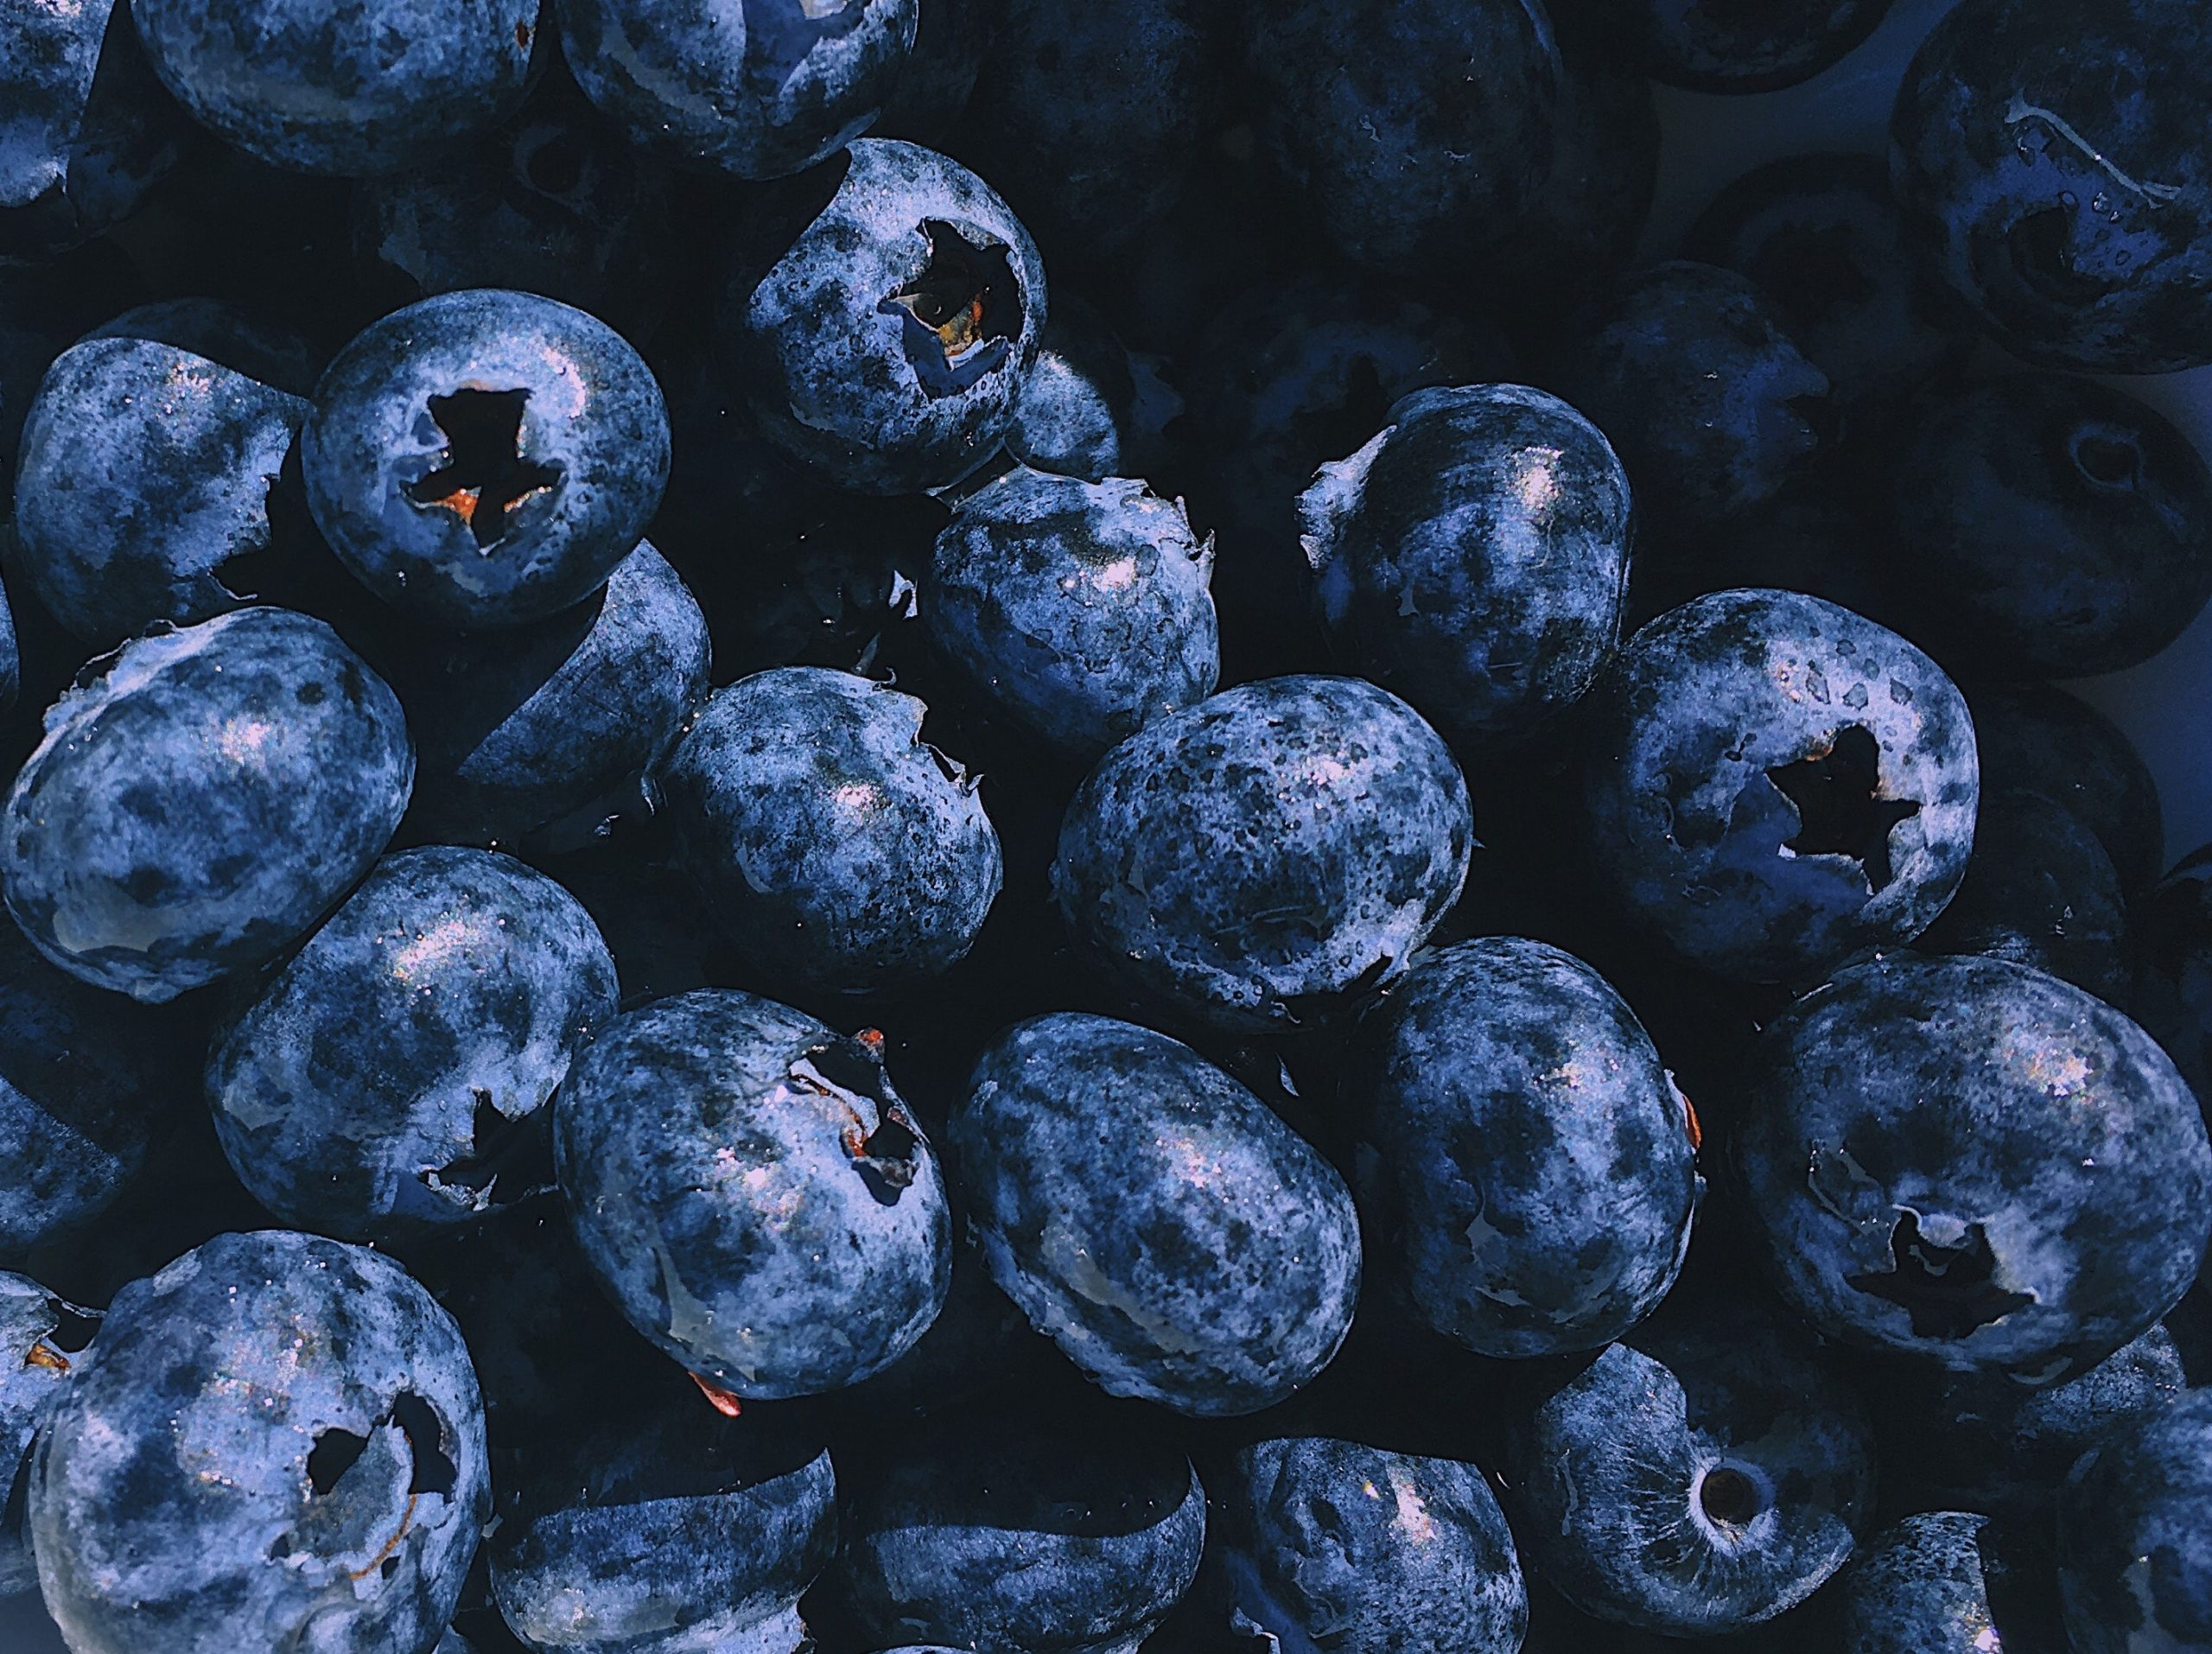 Image: The importance of the humble blueberry